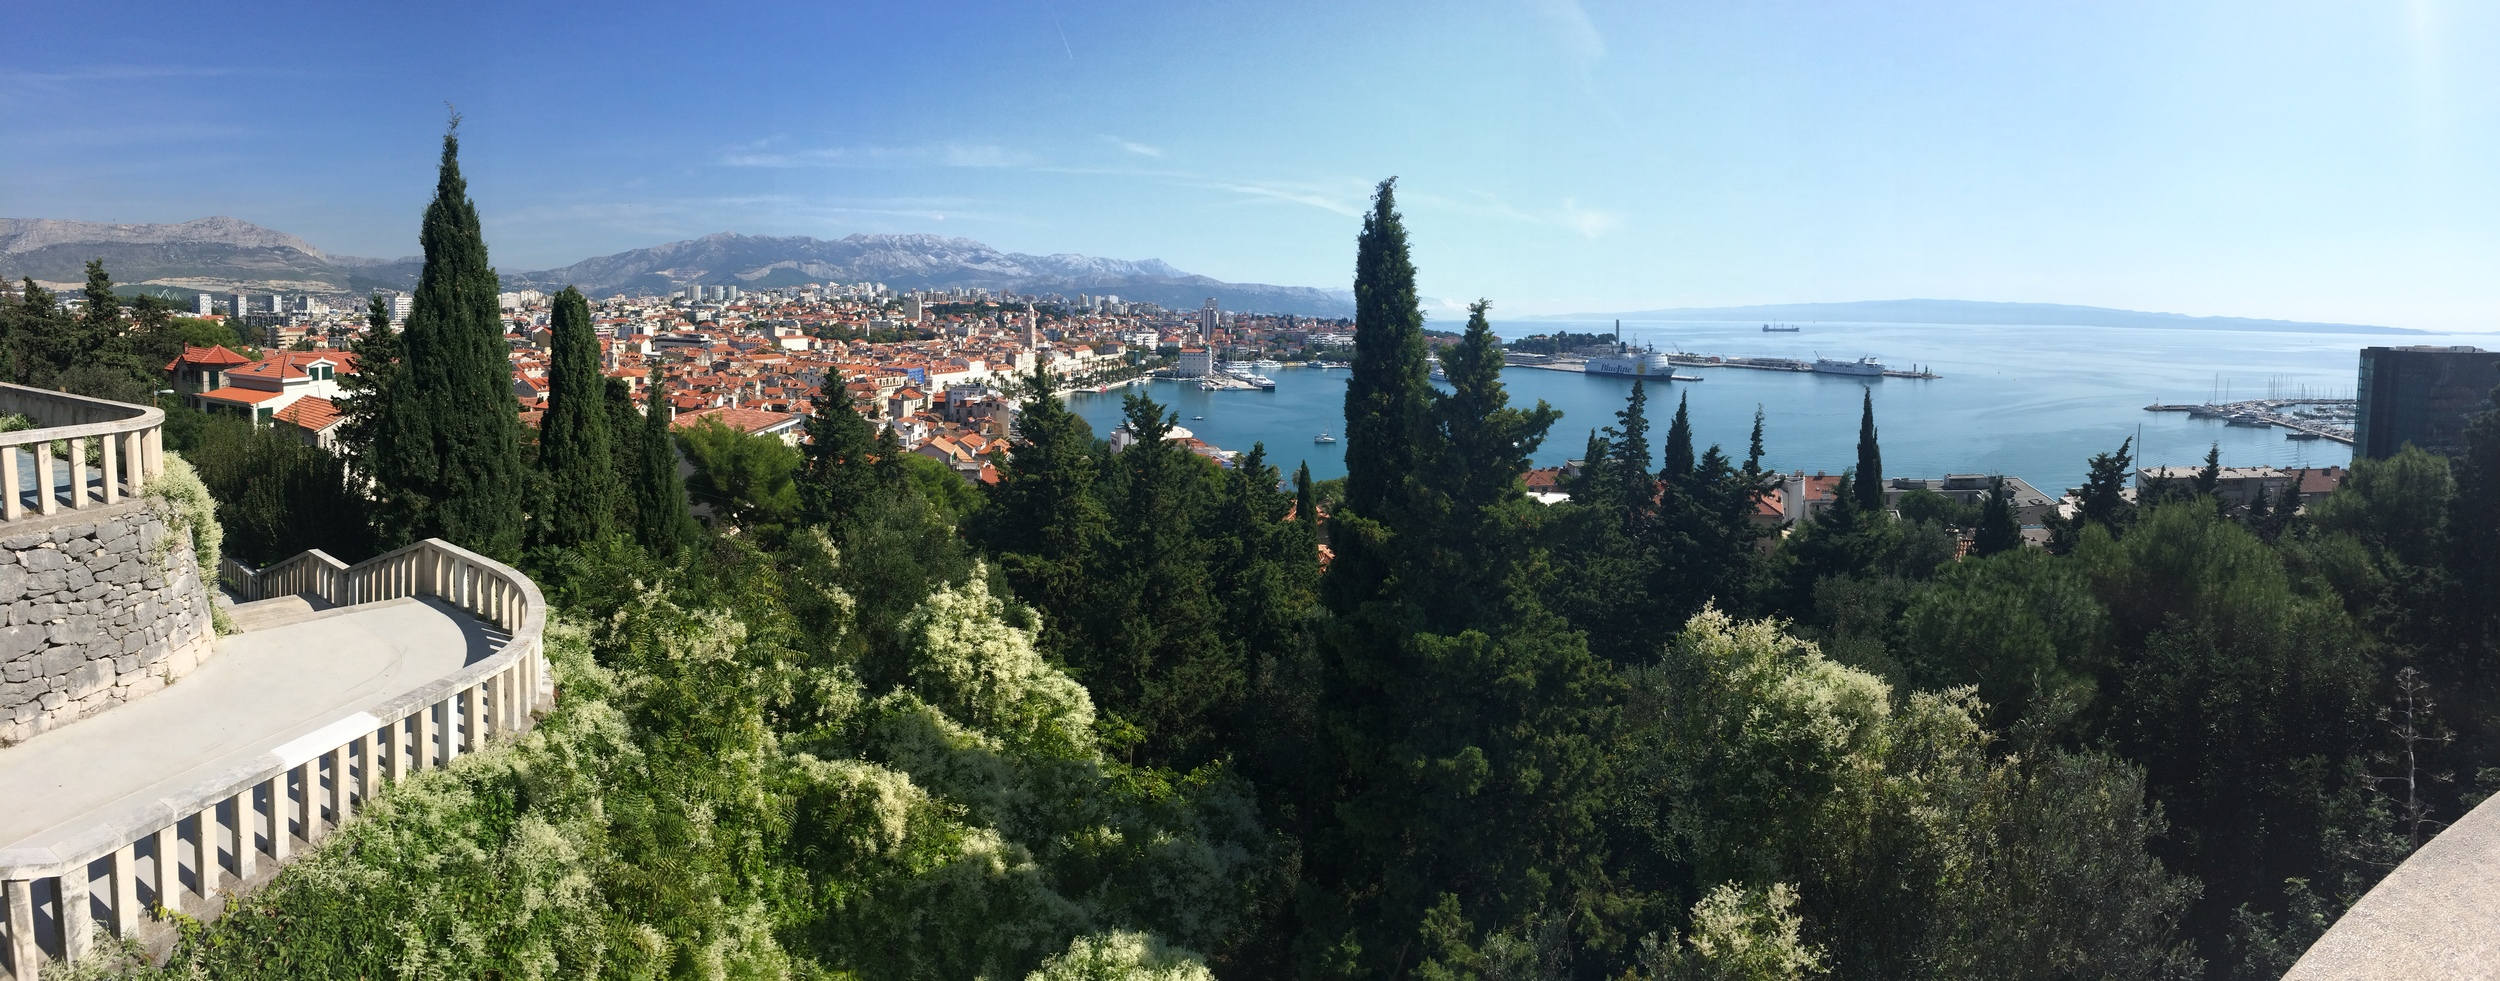 View of Split from the top of